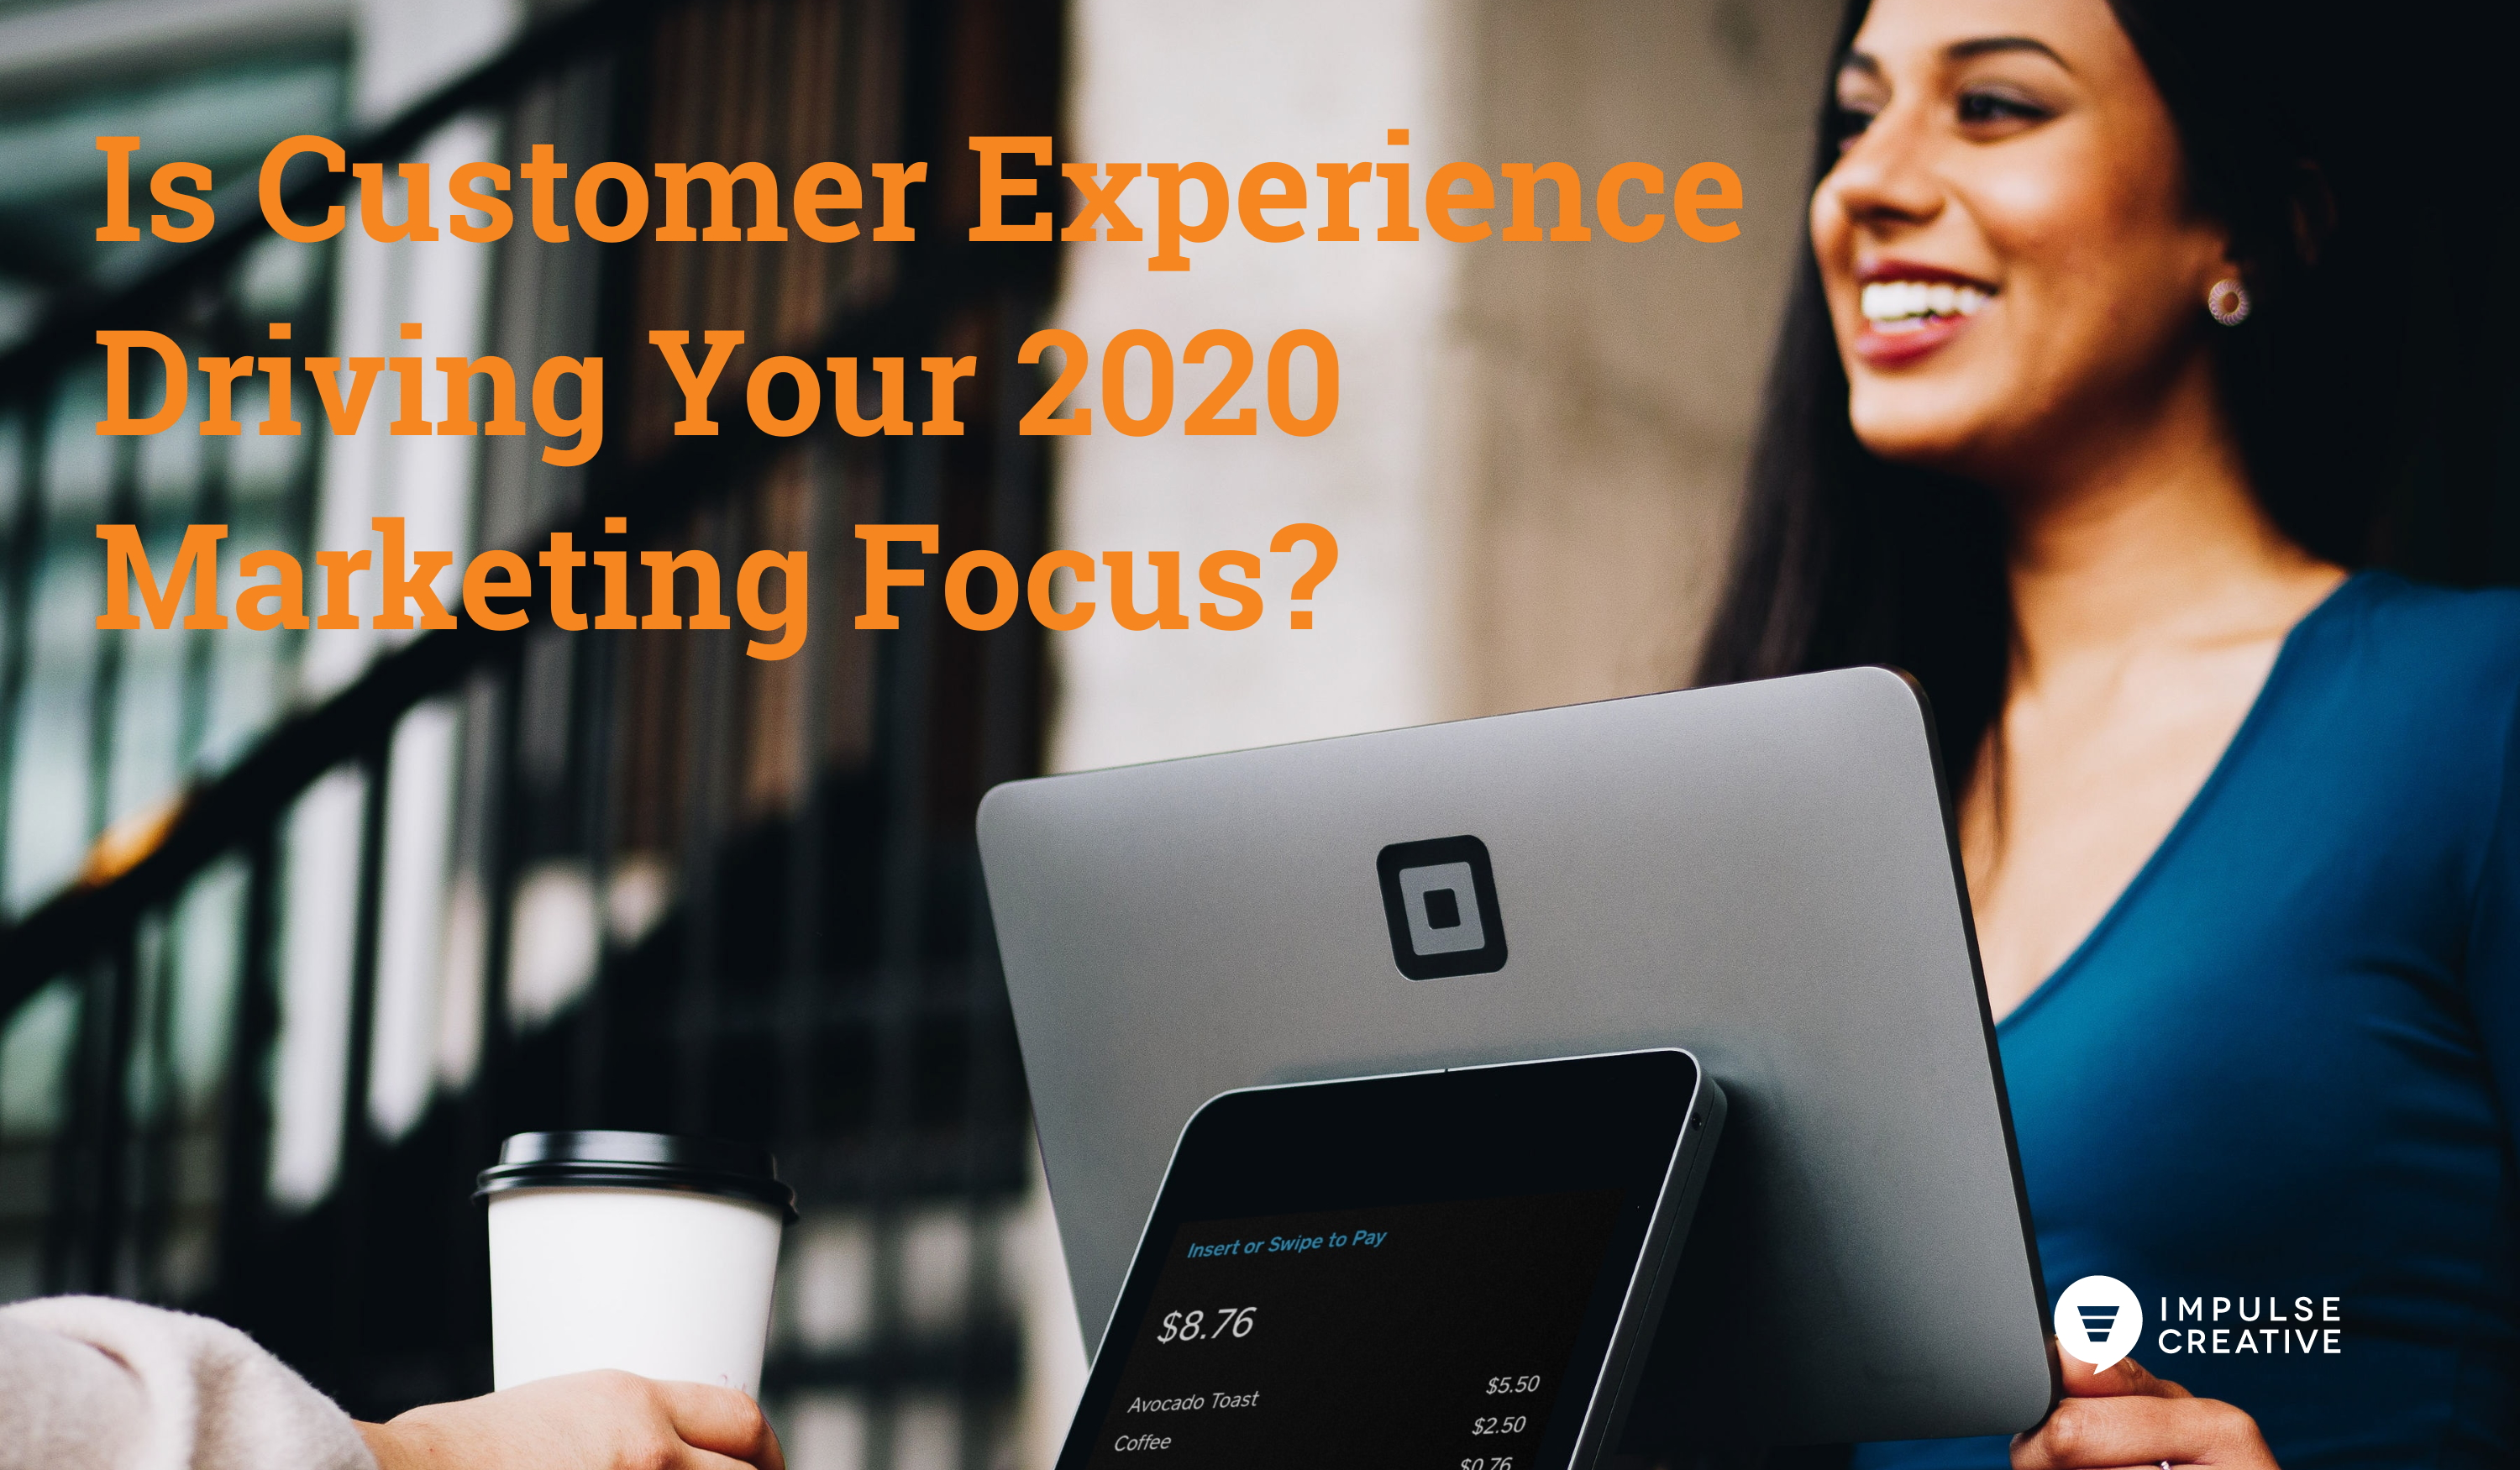 Is Customer Experience Driving Your 2020 Marketing Focus?